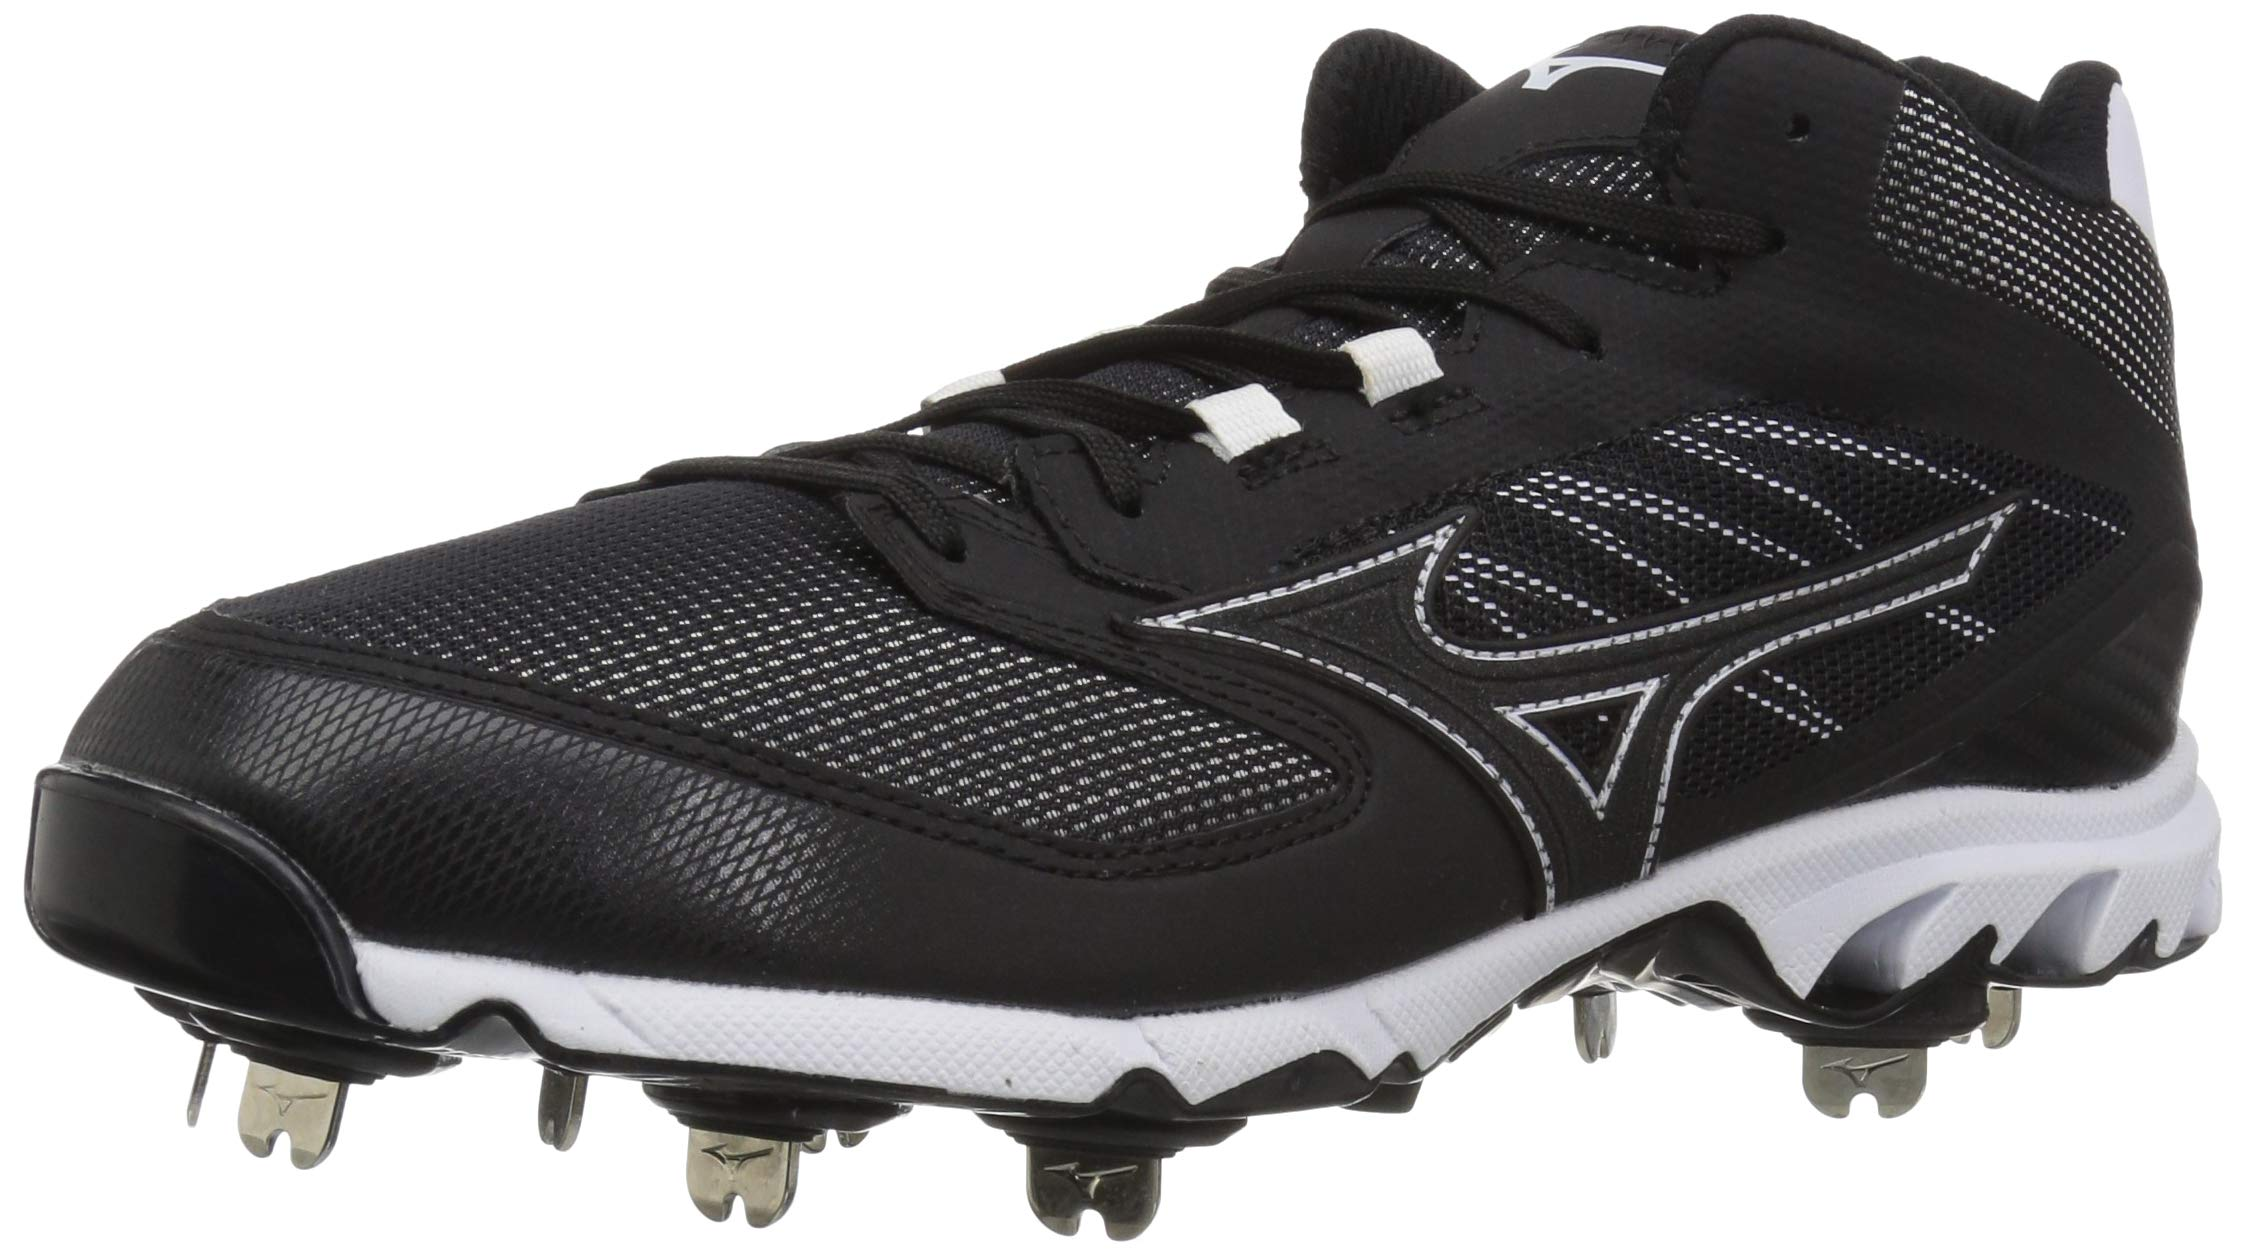 Mizuno Men's 9-Spike Dominant IC Mid Metal Baseball Cleat Athletic Shoe, Black/White